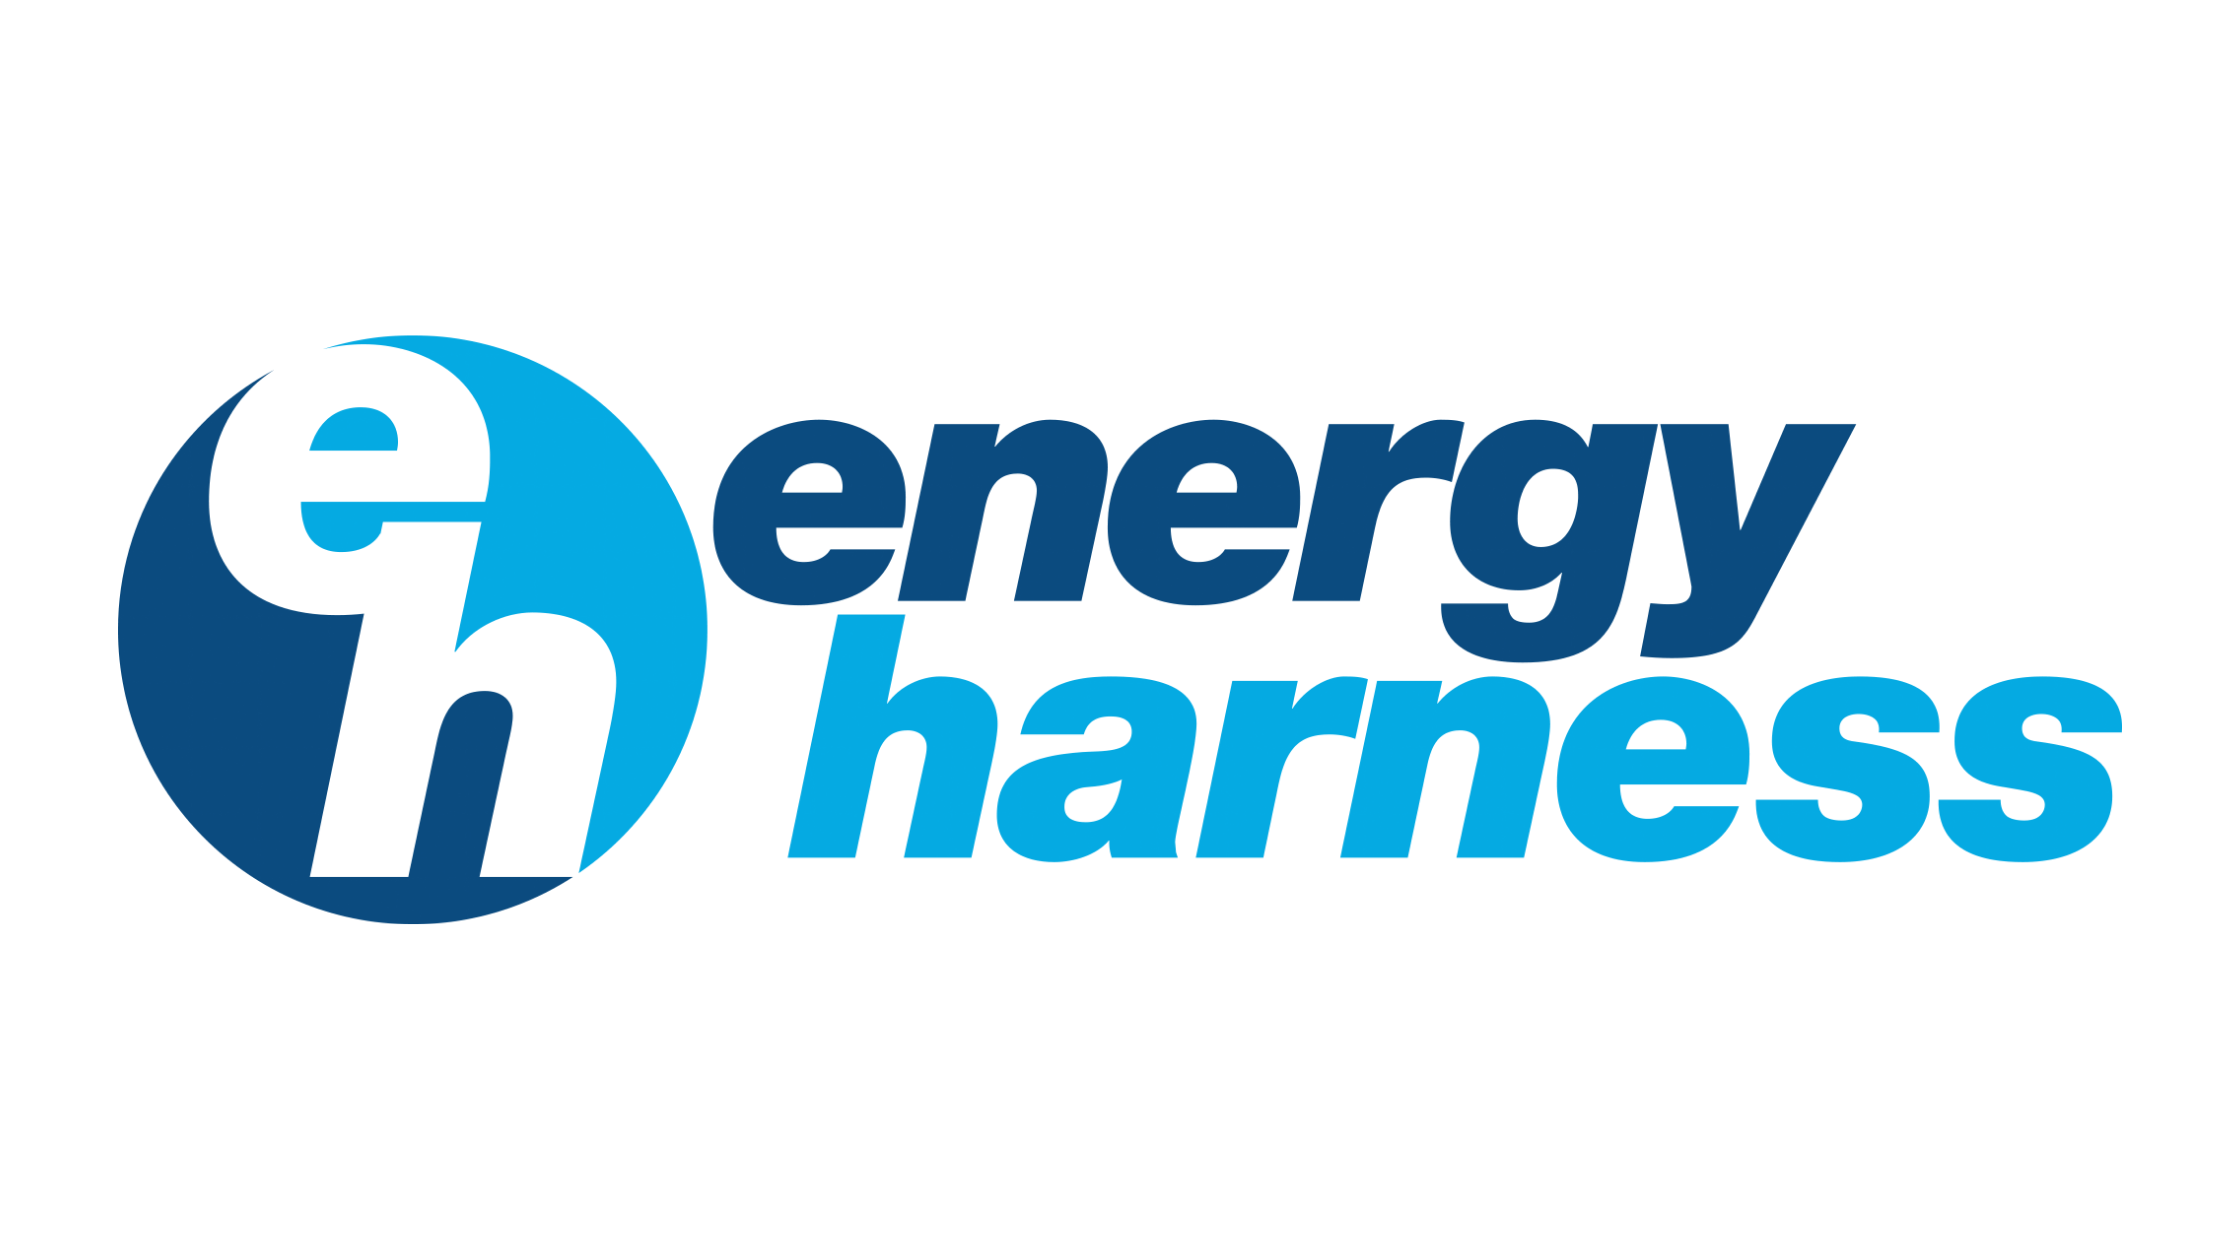 Energy Harness Corporation introduces new device proven to eliminate deadly airborne pathogens